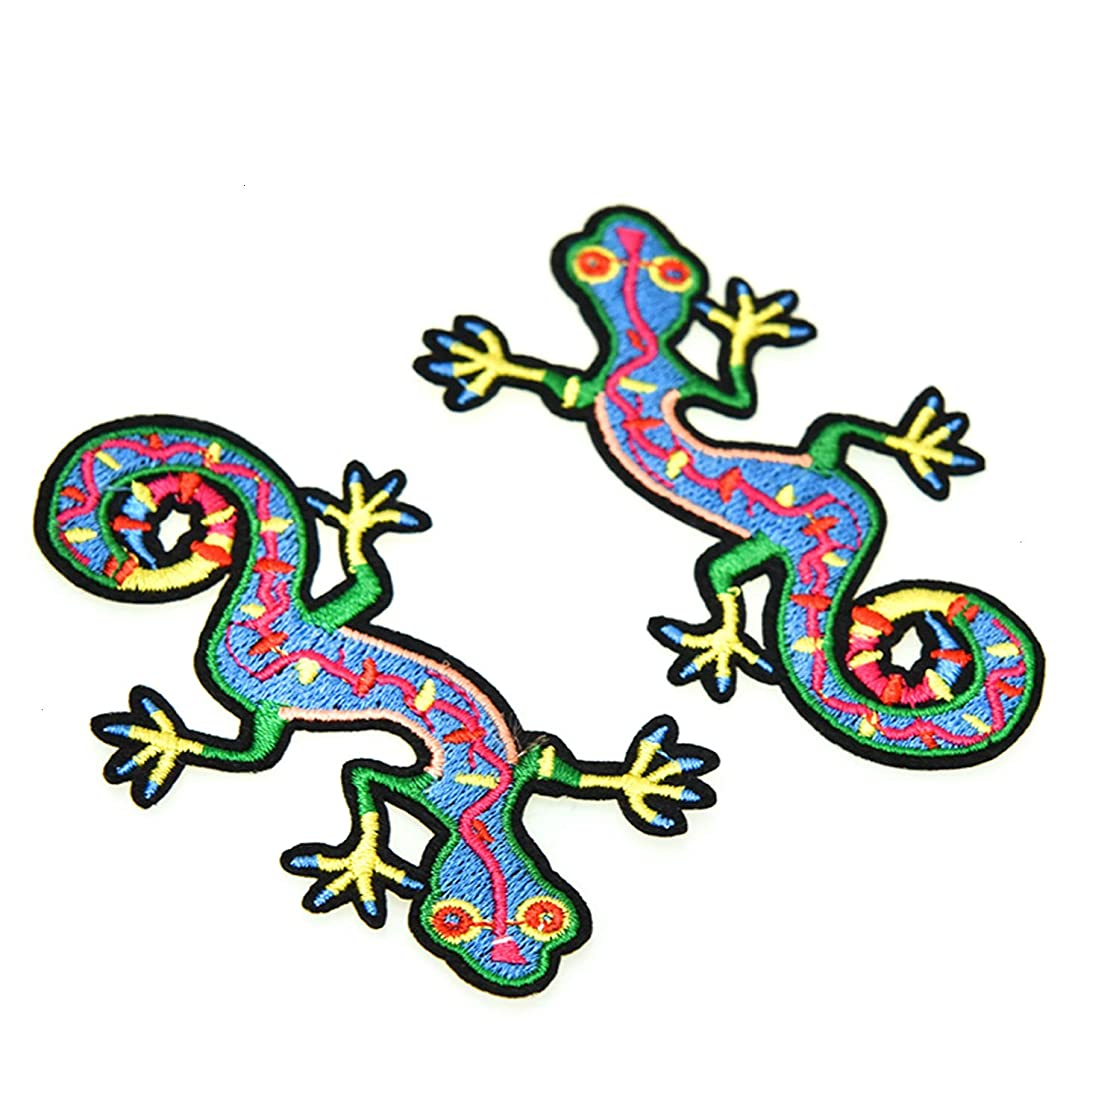 Monrocco 8 Pack Handmade Design Lizard Patches Iron on Retro Animal Embroidery DIY Patches Hat Cap Polo Backpack Clothing Jacket Shirt